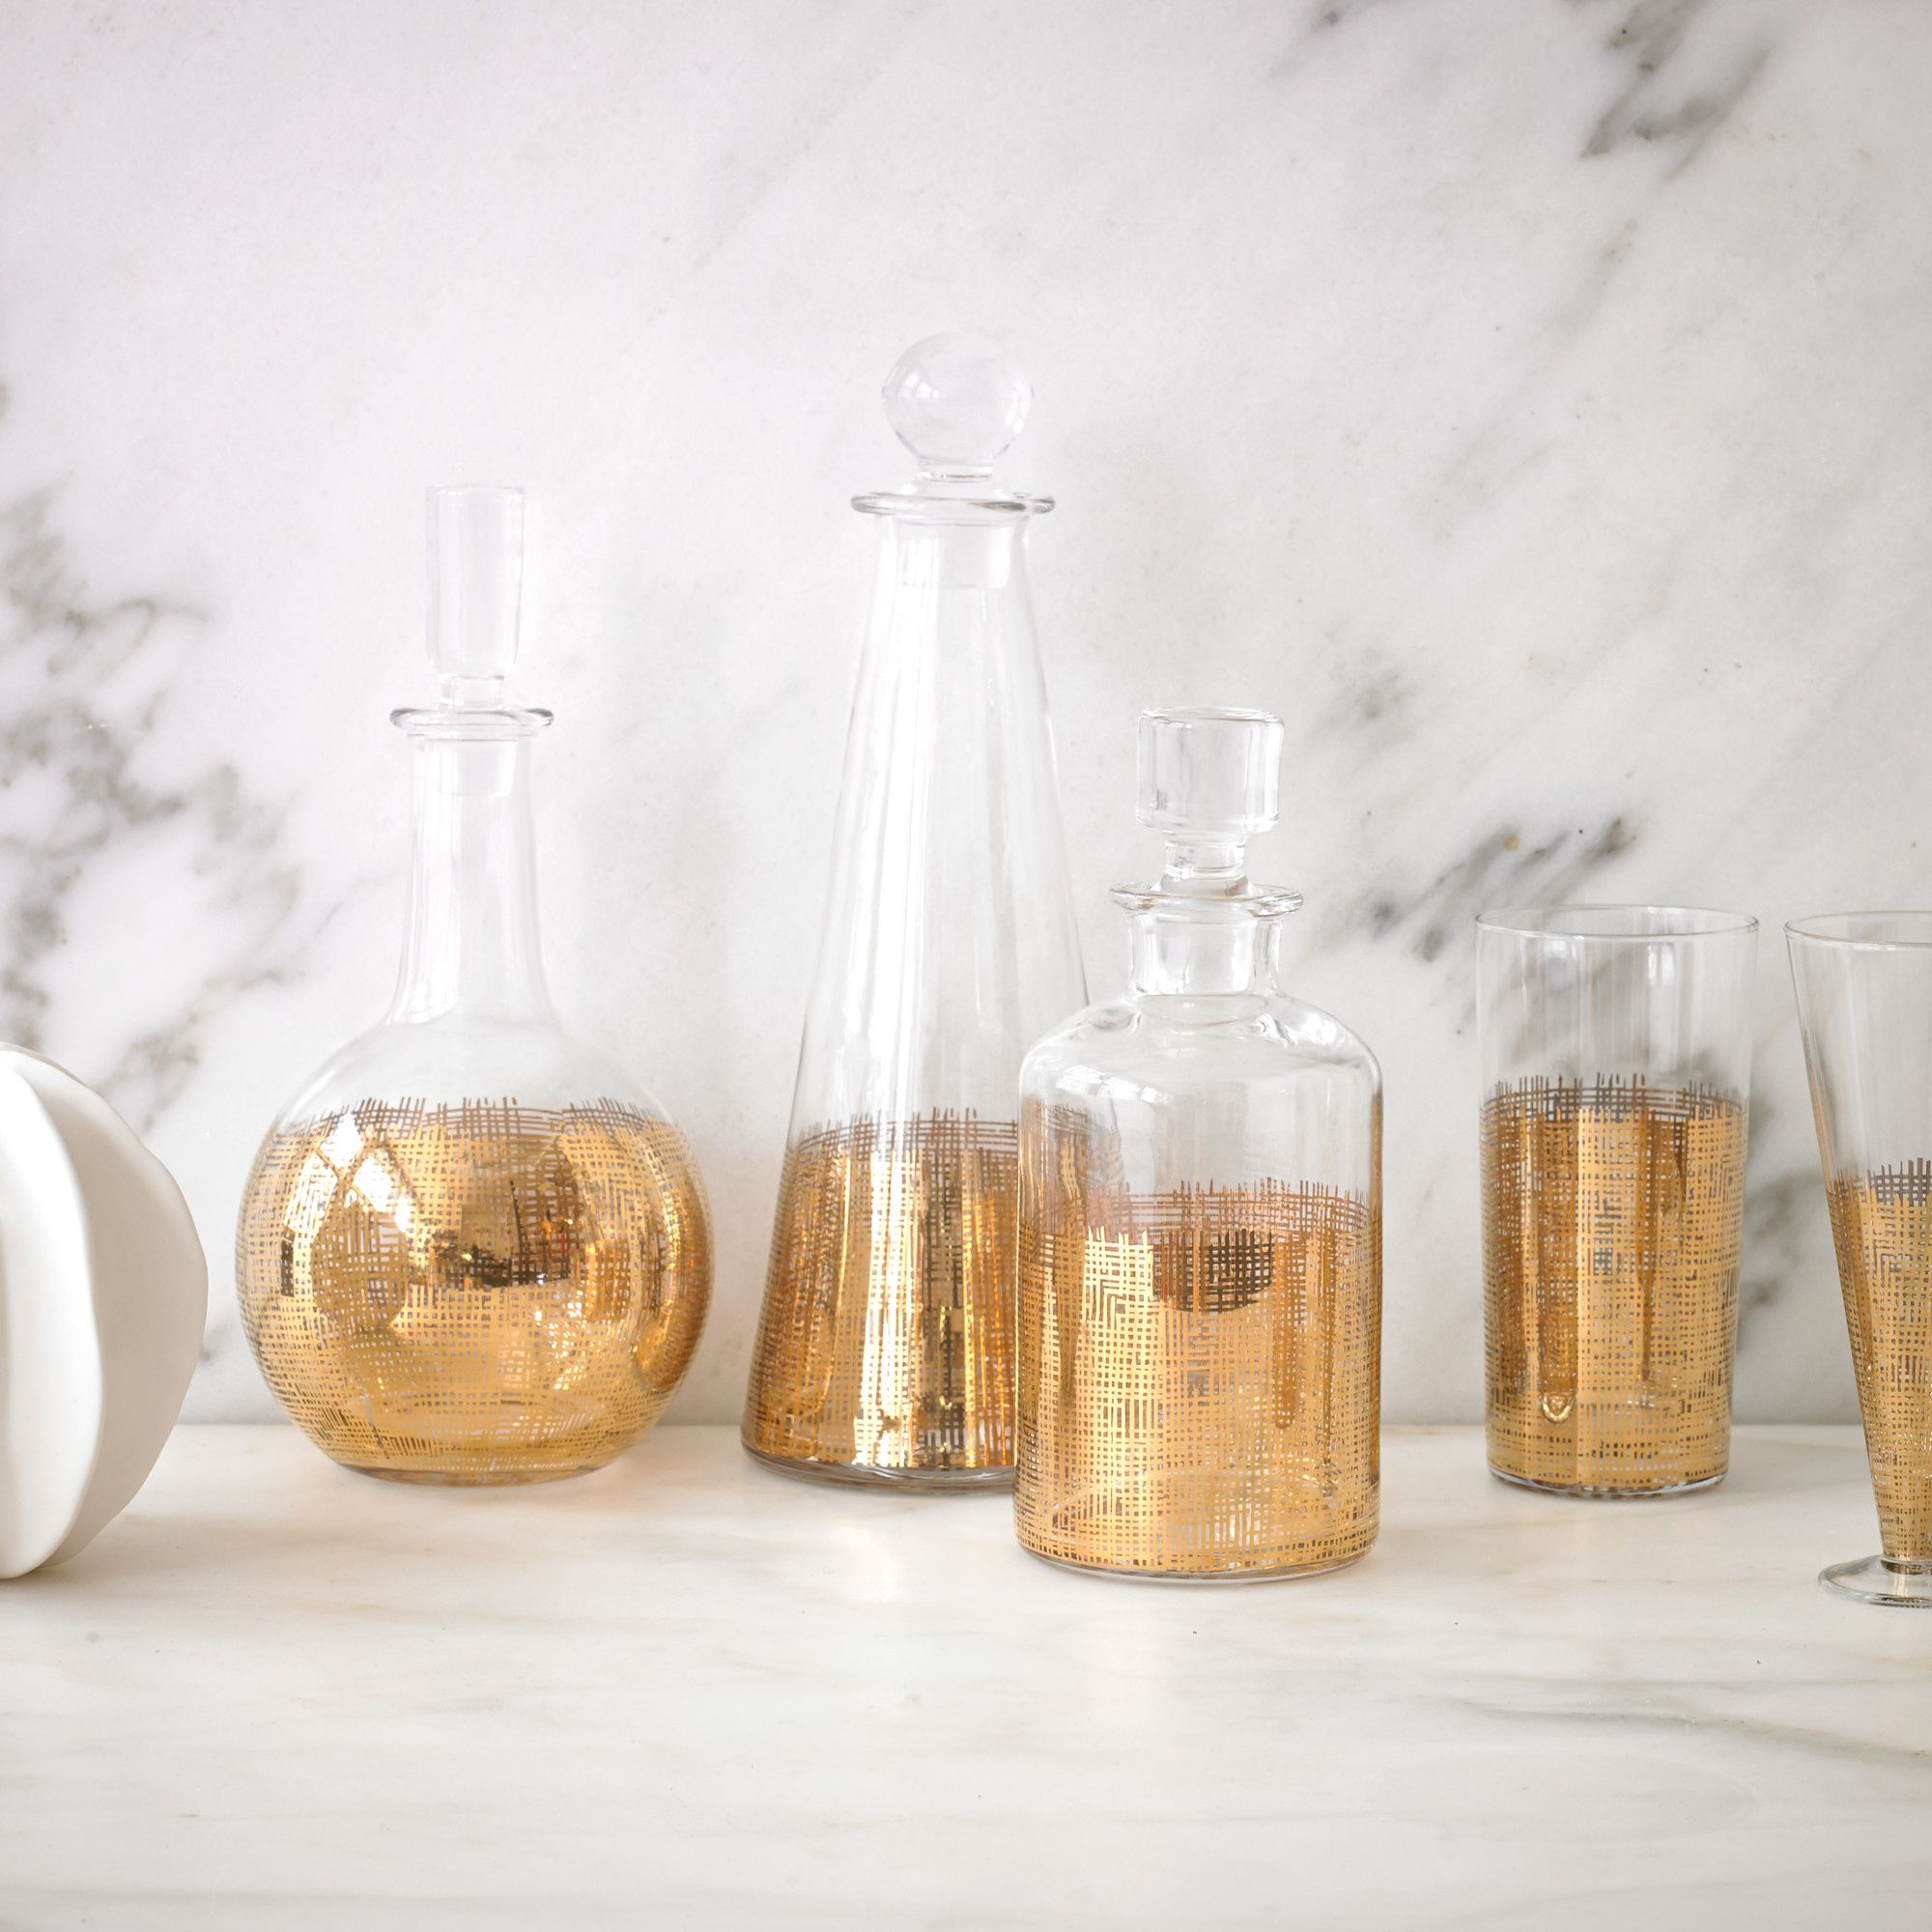 Crosshatch Cylinder Gold Decanter | Set The Modern Table With A Decanter In  A Geometric Shape